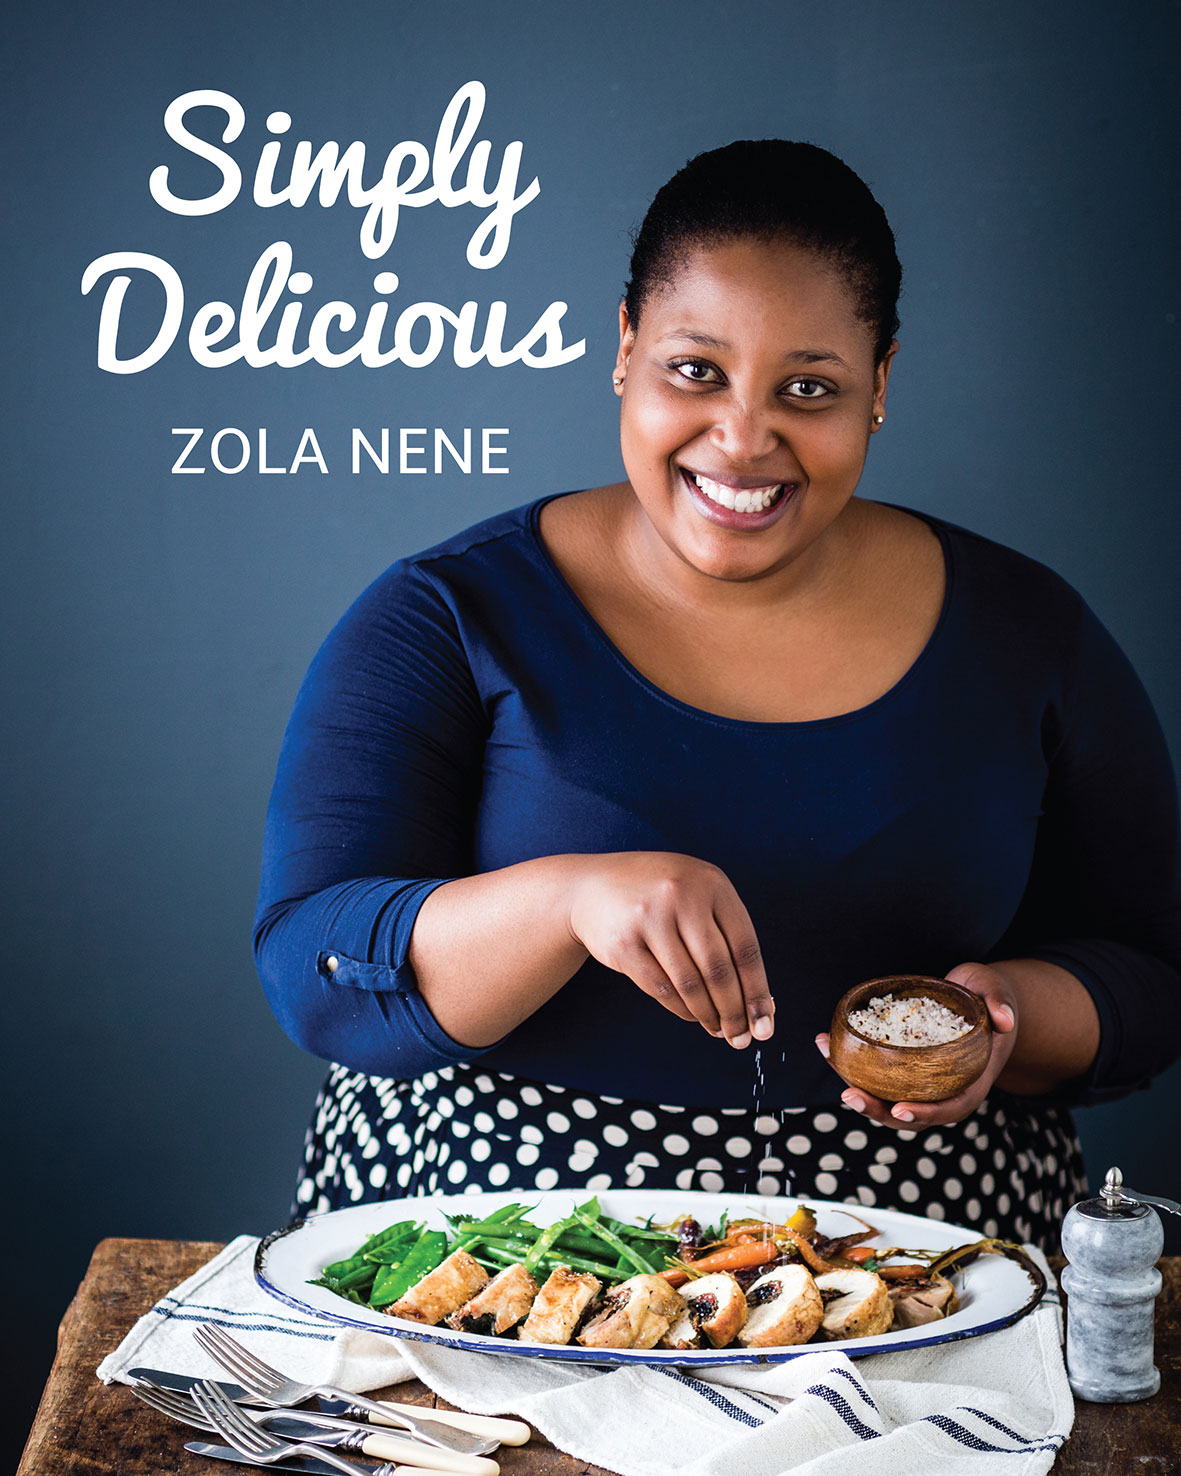 Zola Nene - Shades of cinnamon